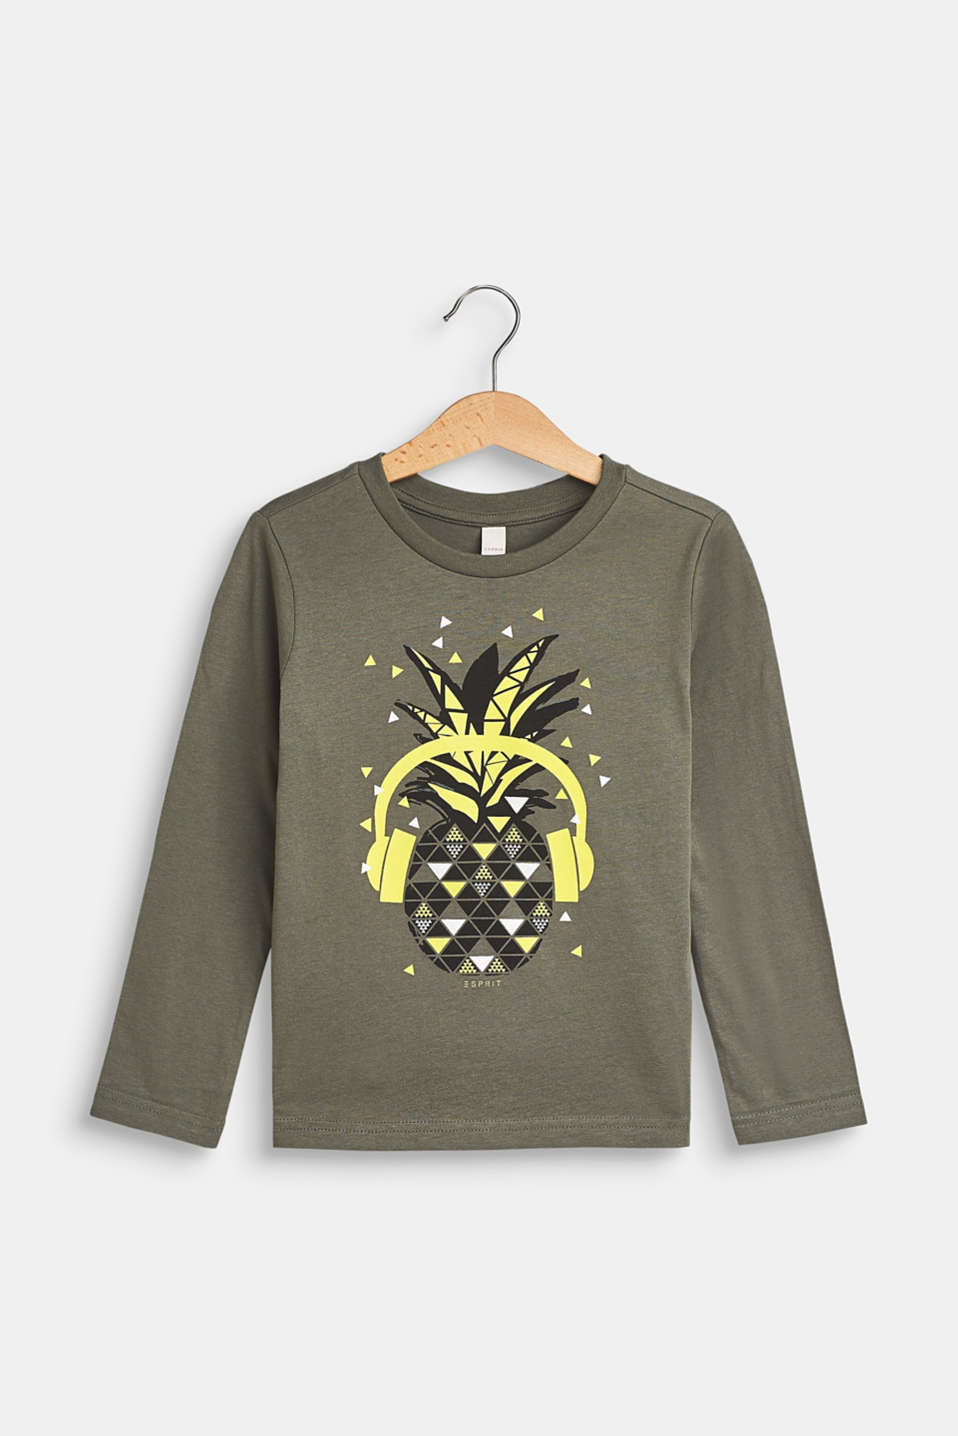 Esprit - Long sleeve top with a pineapple motif, 100% cotton